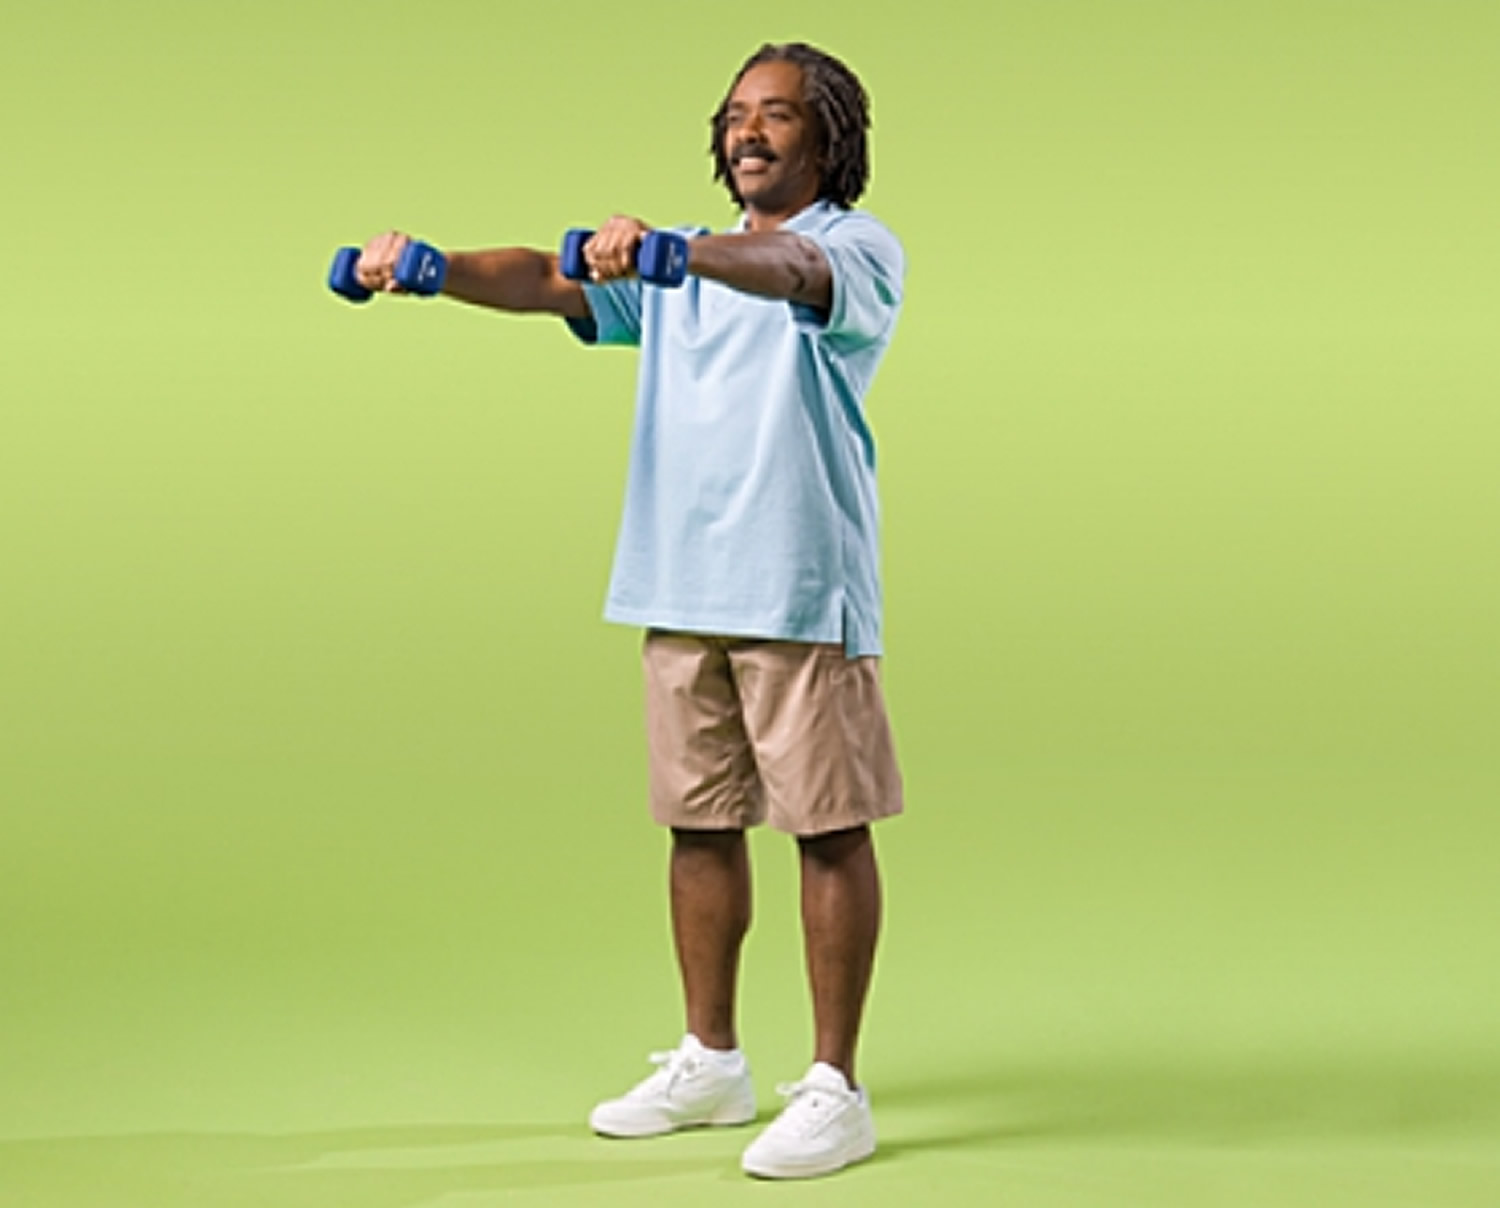 Front Arm Raise Strength Exercise for Seniors